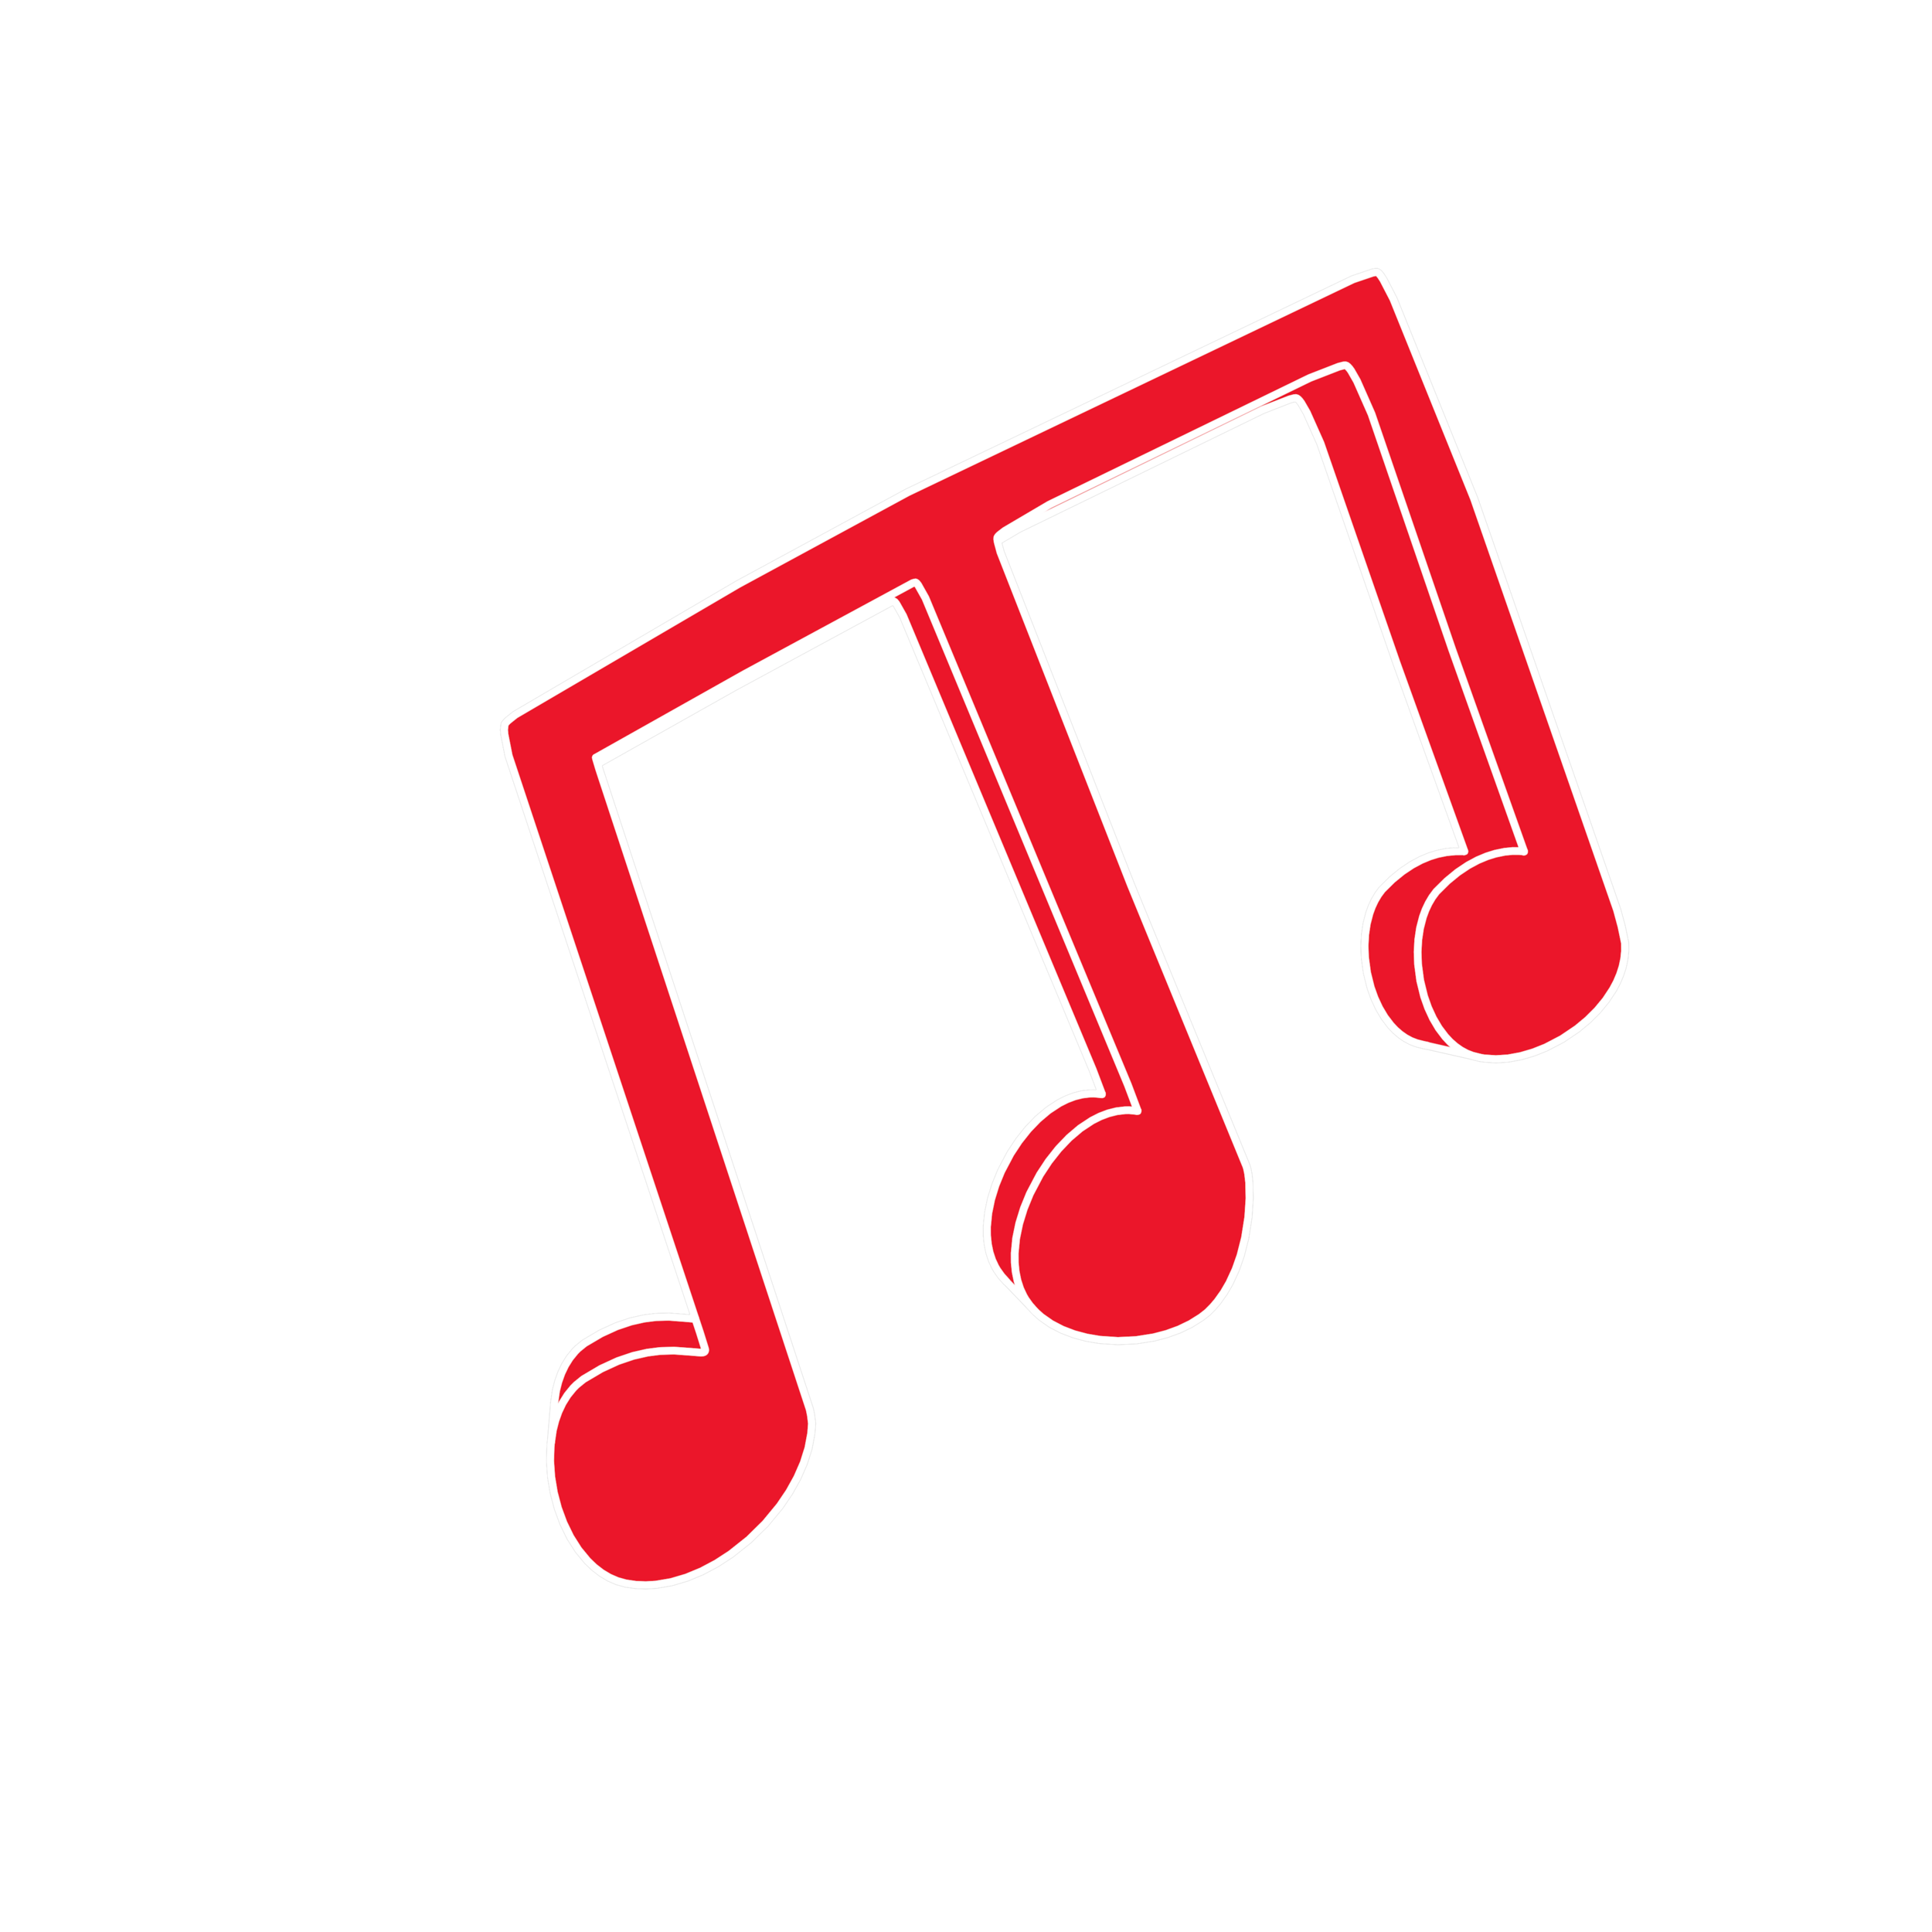 Music_3_-_Red.png